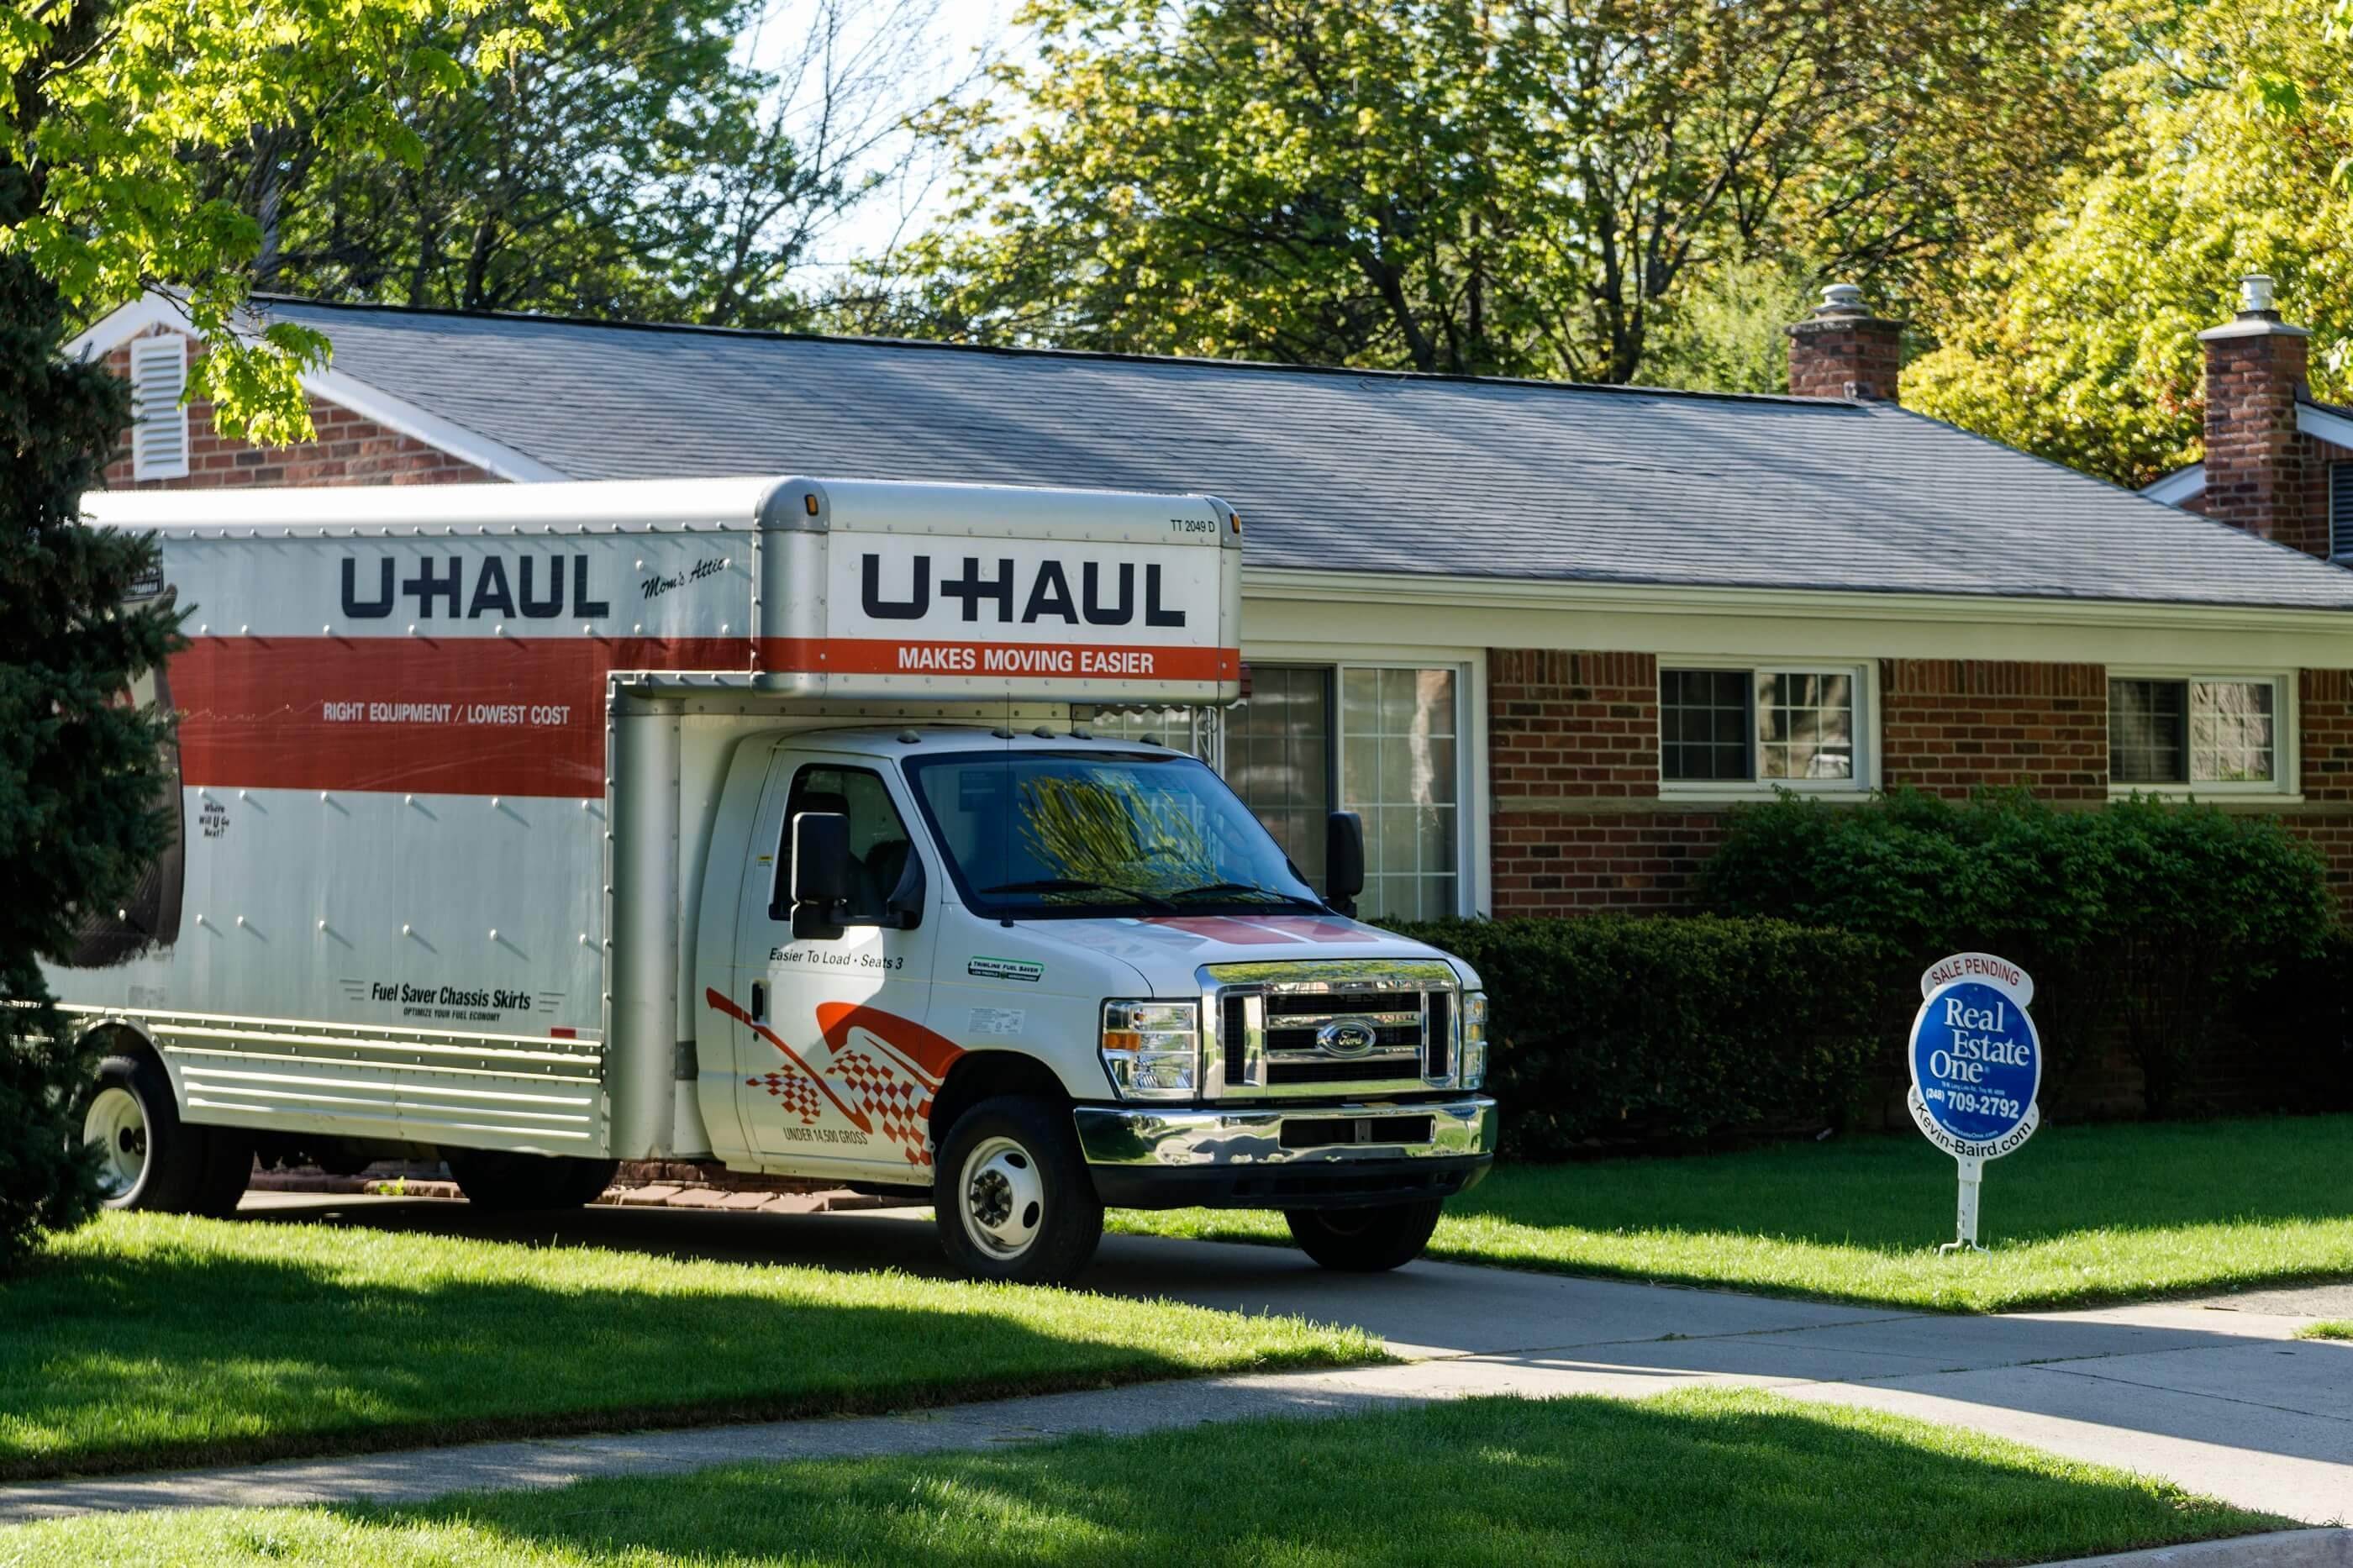 U-Haul truck in front of a house